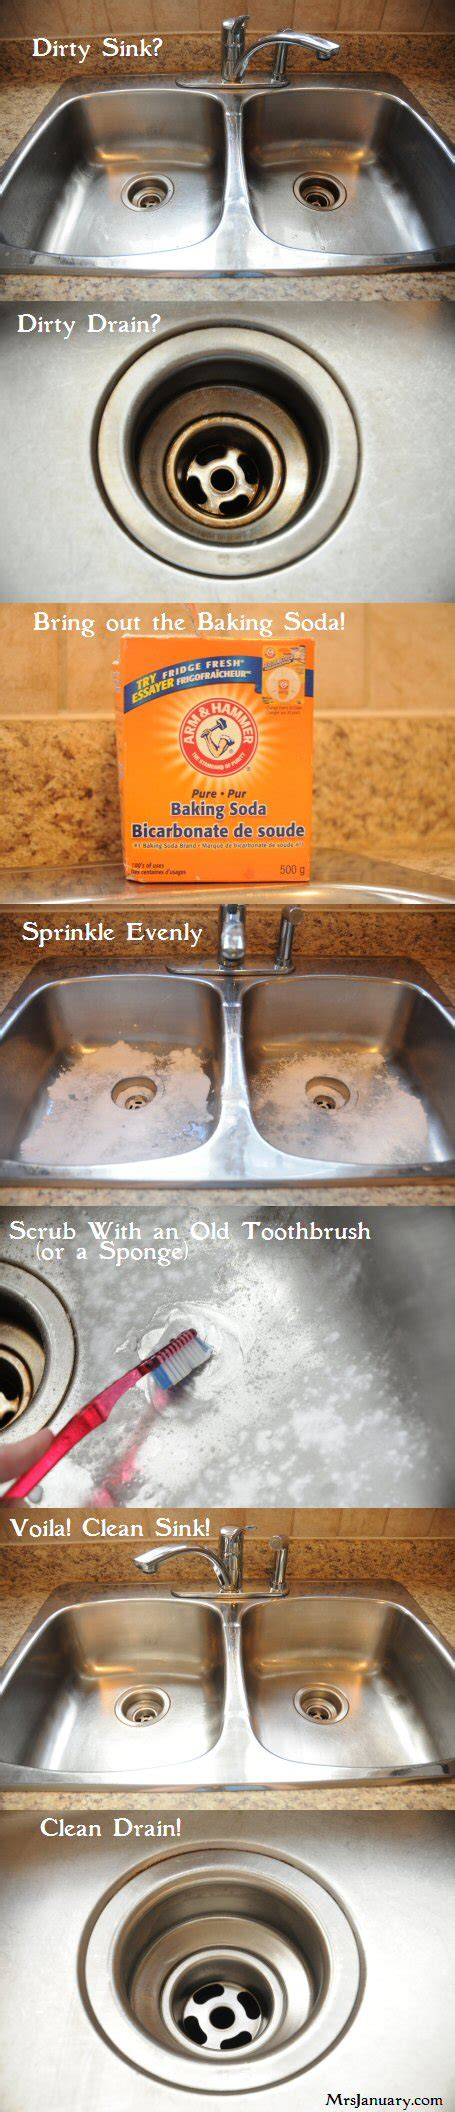 how to clean stainless steel kitchen sink how to clean stainless steel kitchen sink or drain how